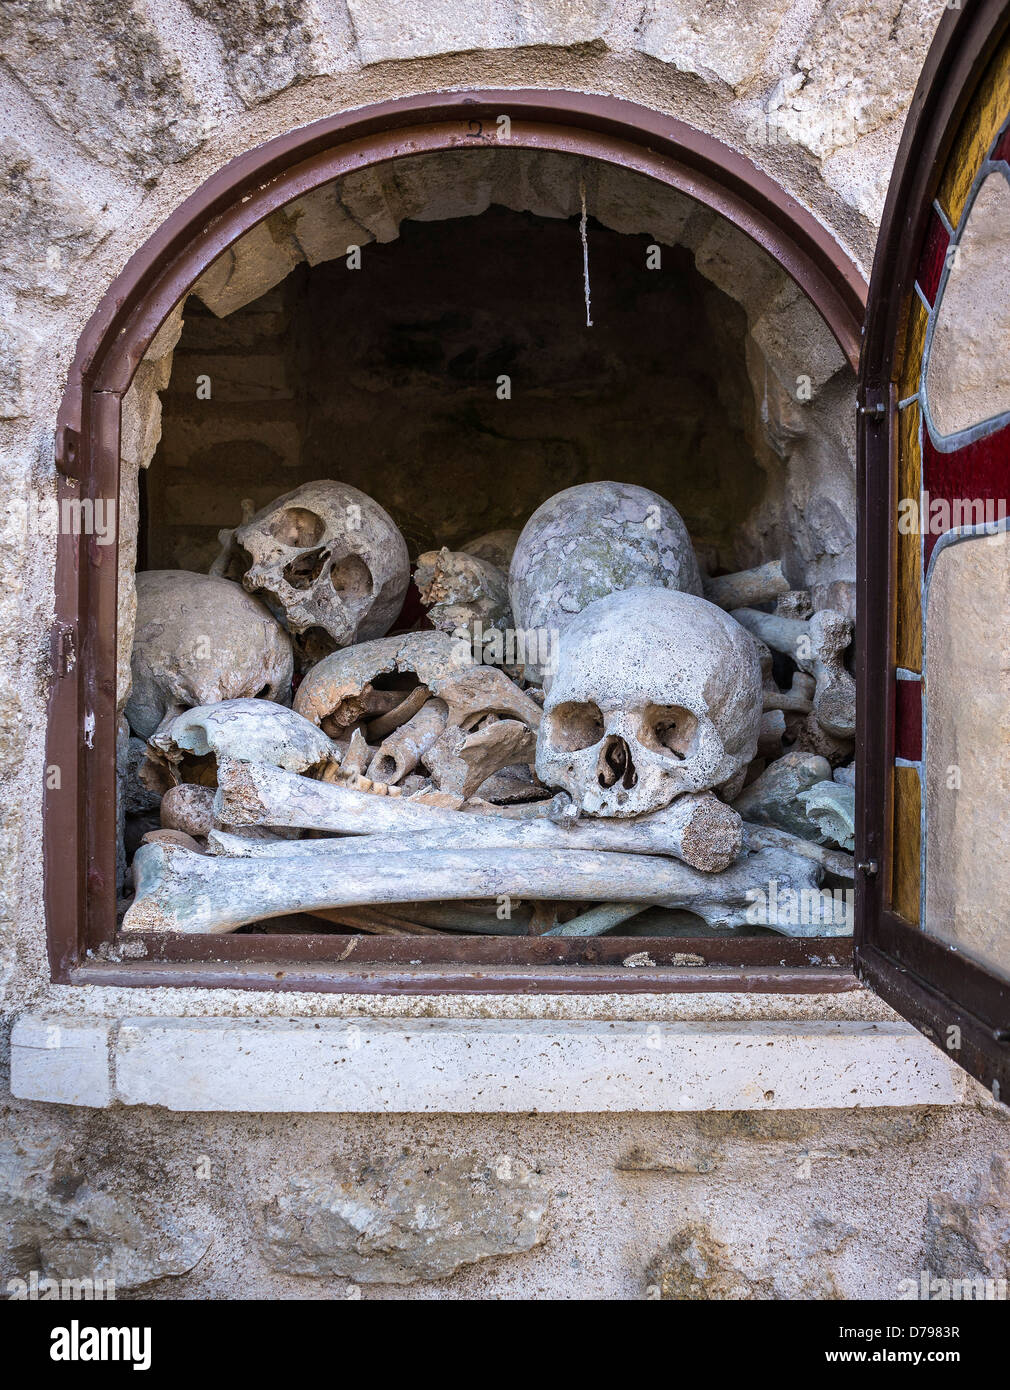 An Ossuary containing bones of former monks and Priests at Spiliotisa Monastery, near Itilo, Inner Mani, Peloponnese, - Stock Image